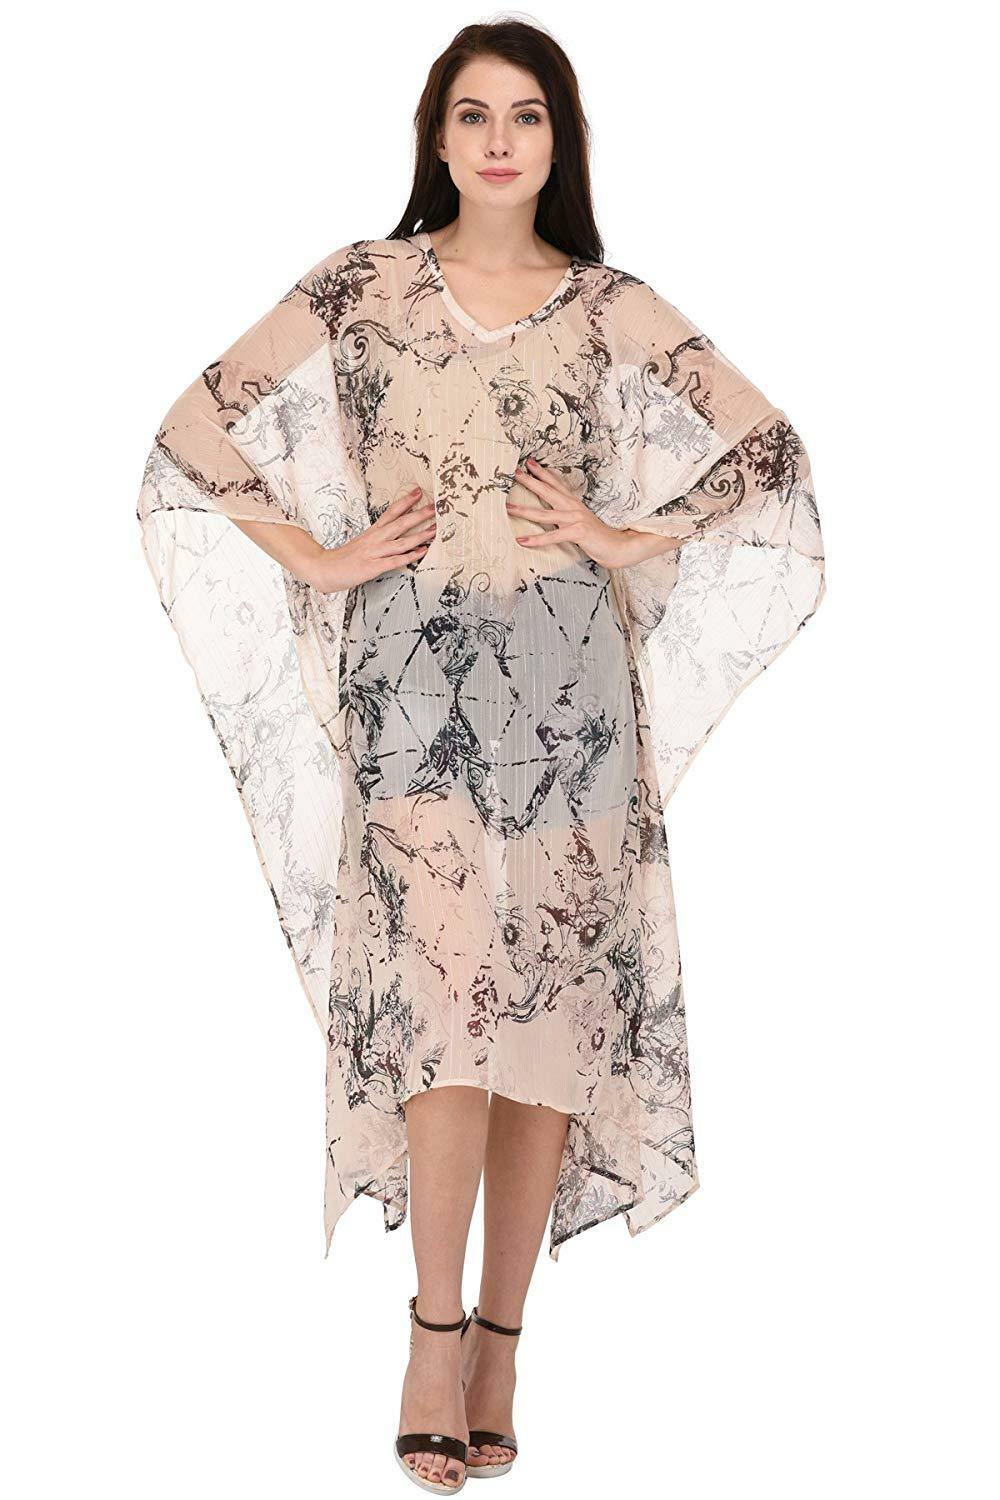 damen Digitally Printed Beach Kaftan Kimono Sleeve Maxi Dress Plus Größe